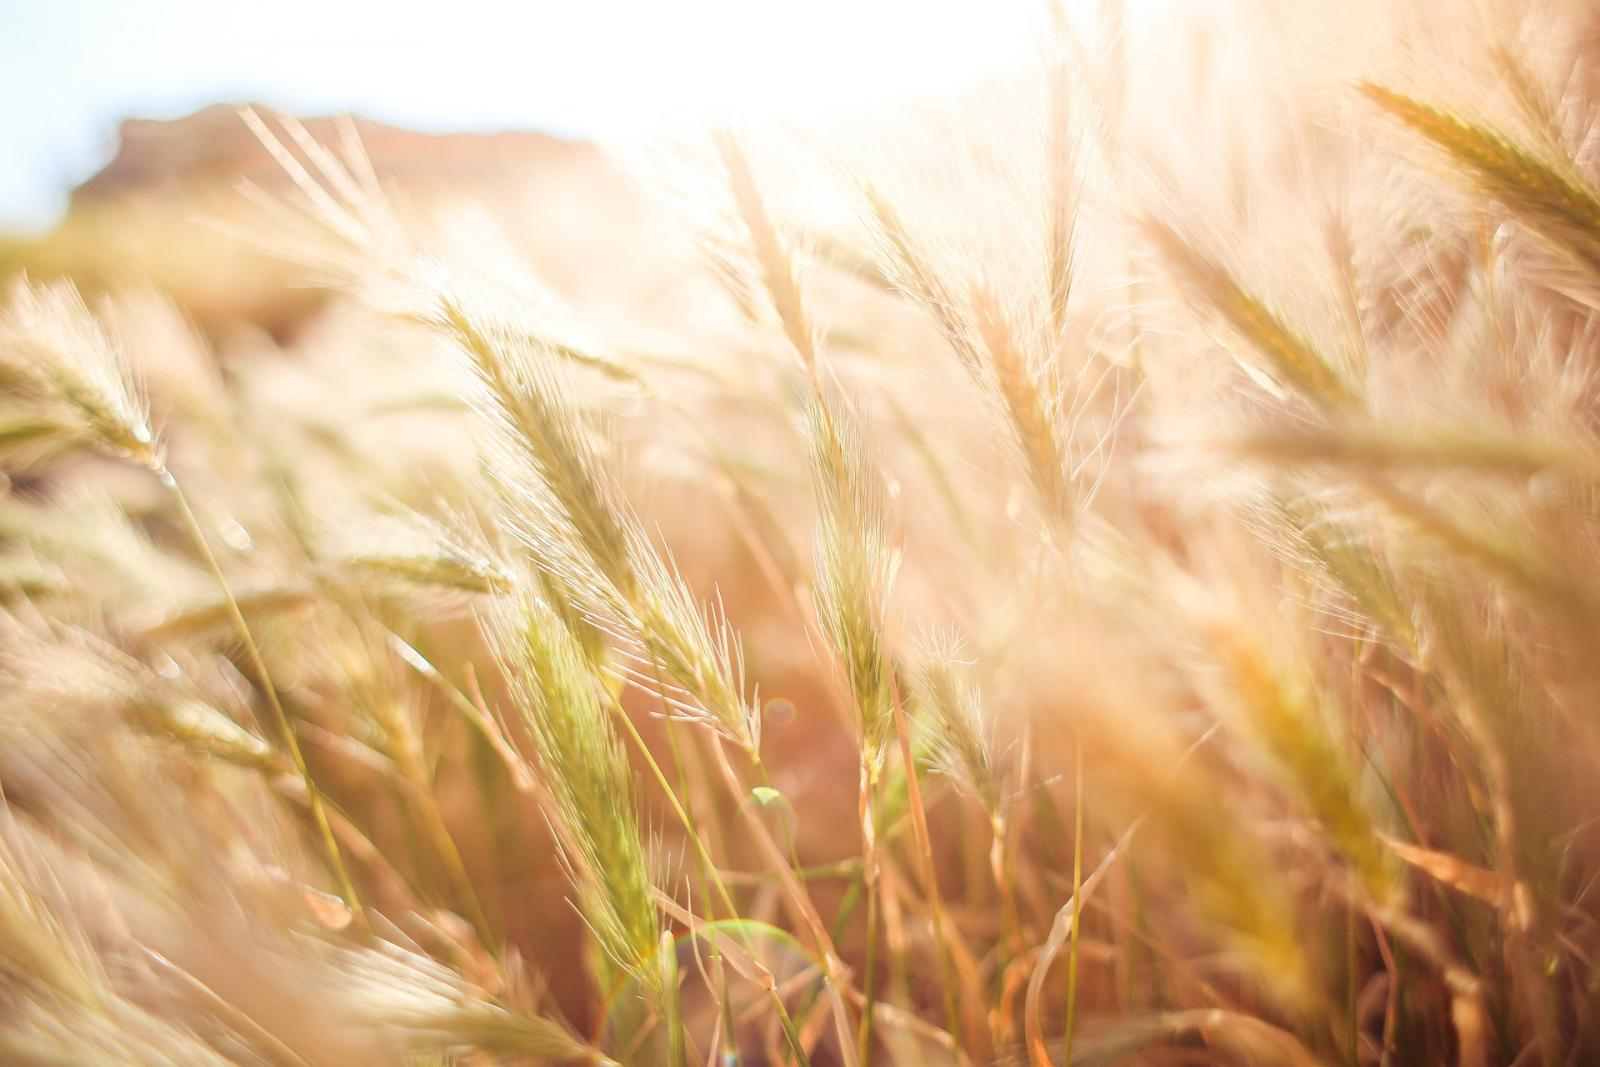 Close up of wheat. Photo credit: Pixabay